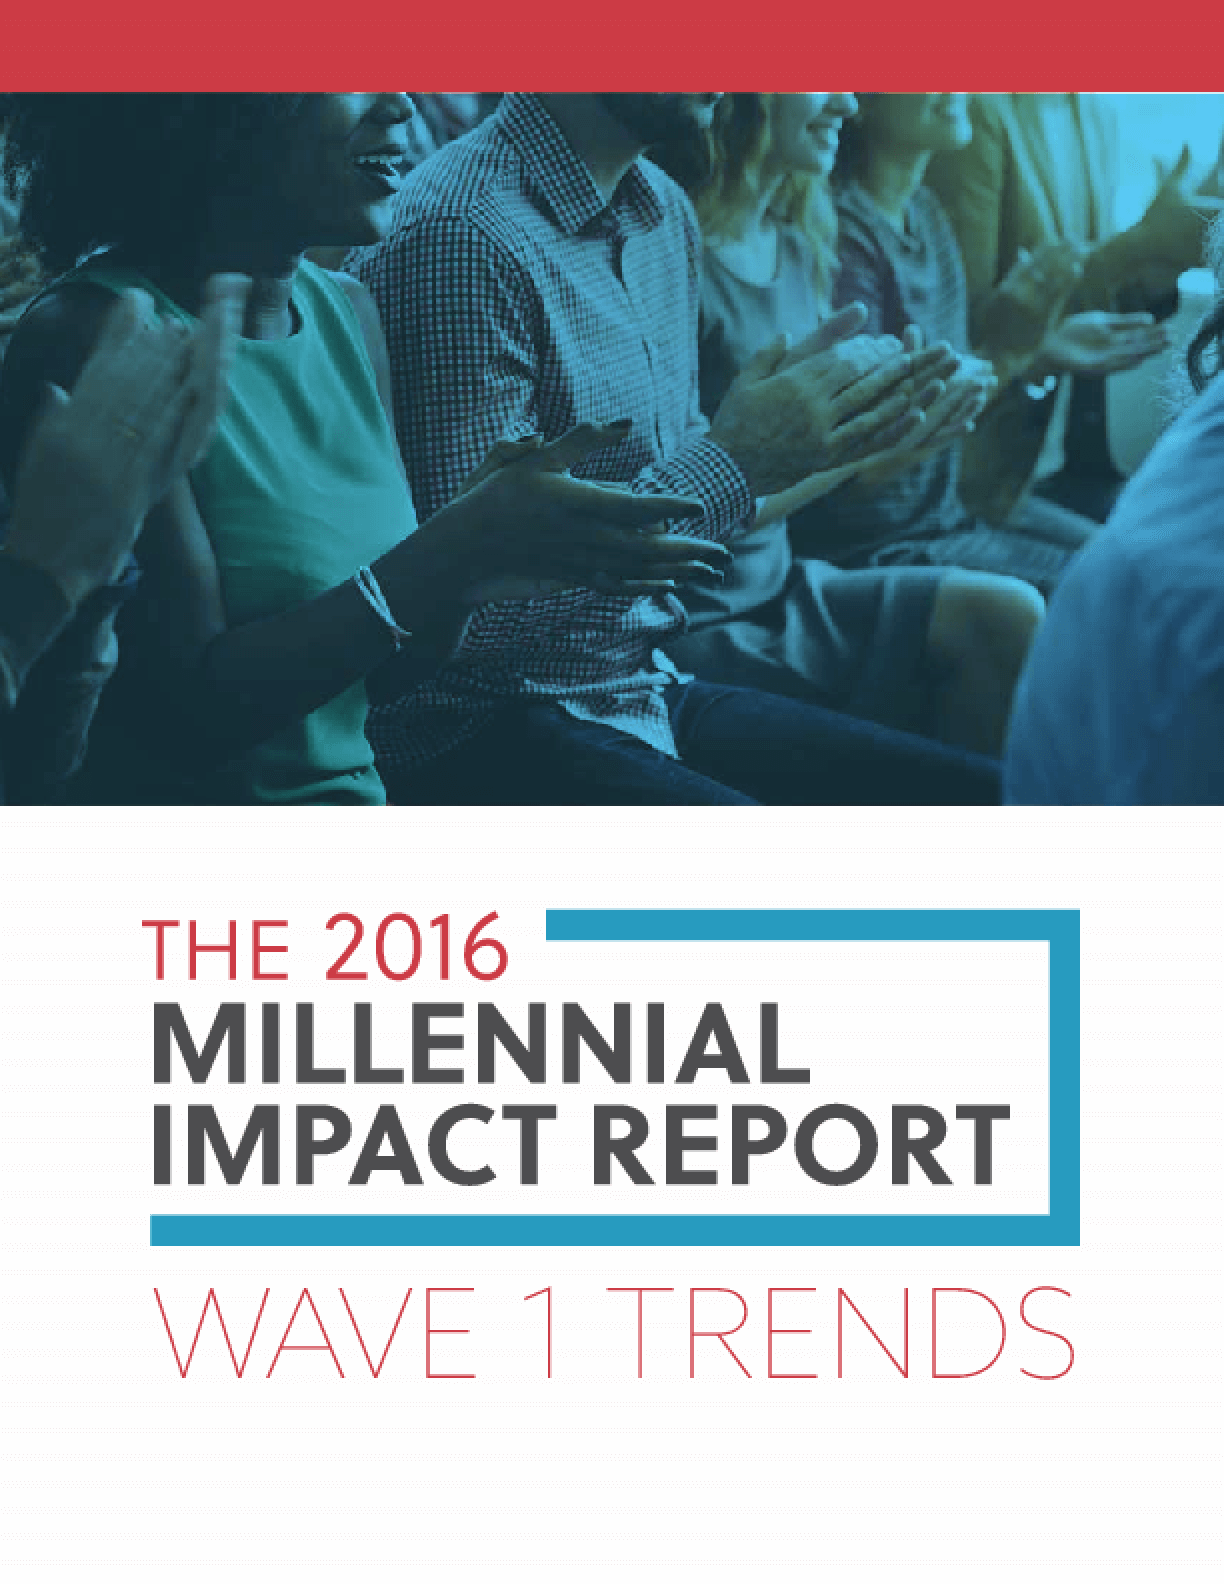 The 2016 Millennial Impact Report: Wave 1 Trends